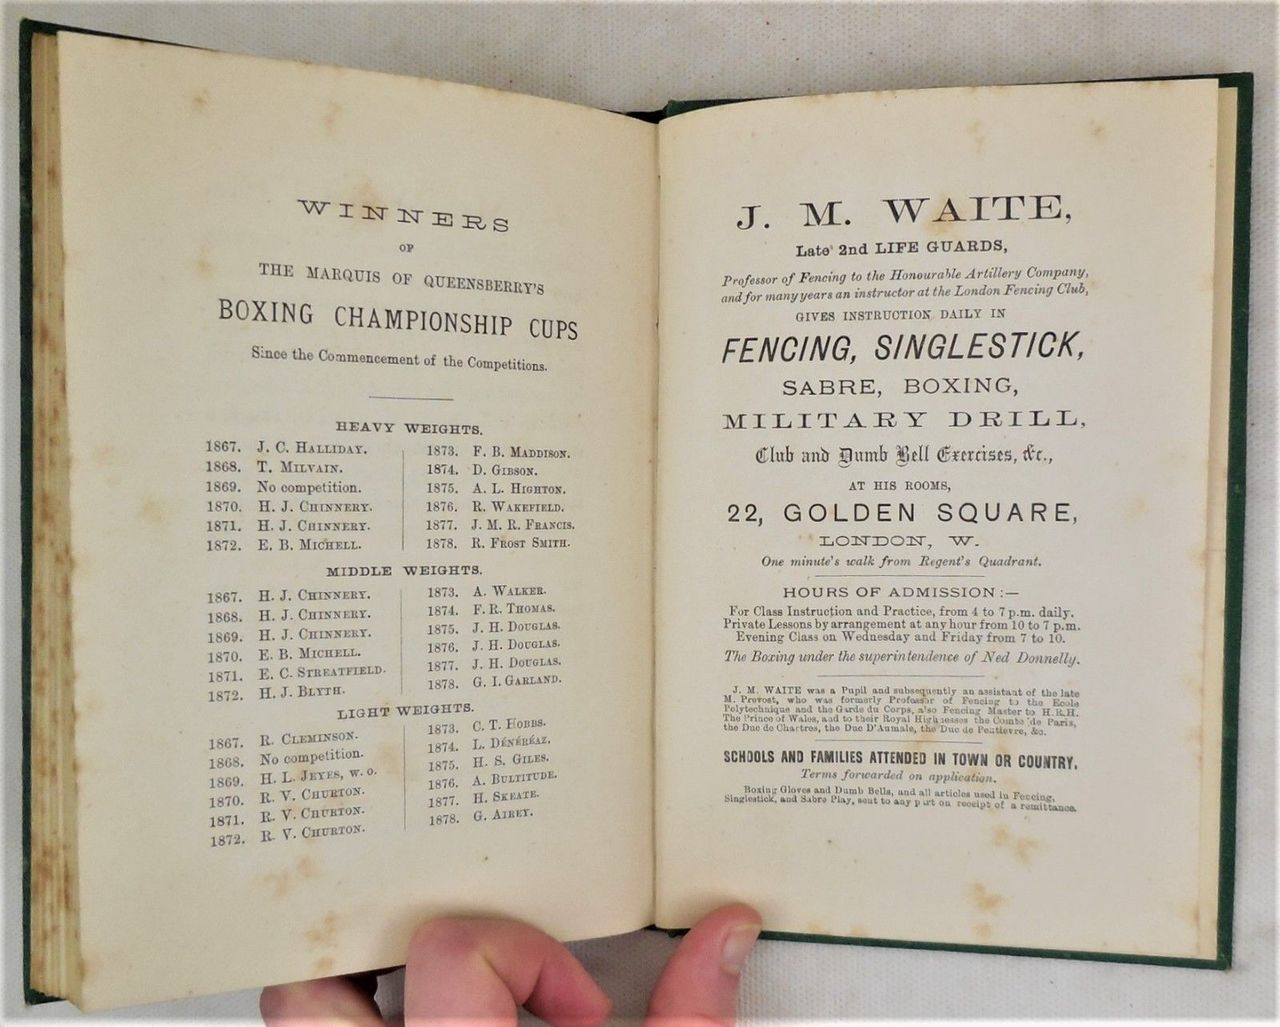 SELF DEFENCE: OR, THE ART OF BOXING, by Ned Donnelly; J.M.Waite - 1879